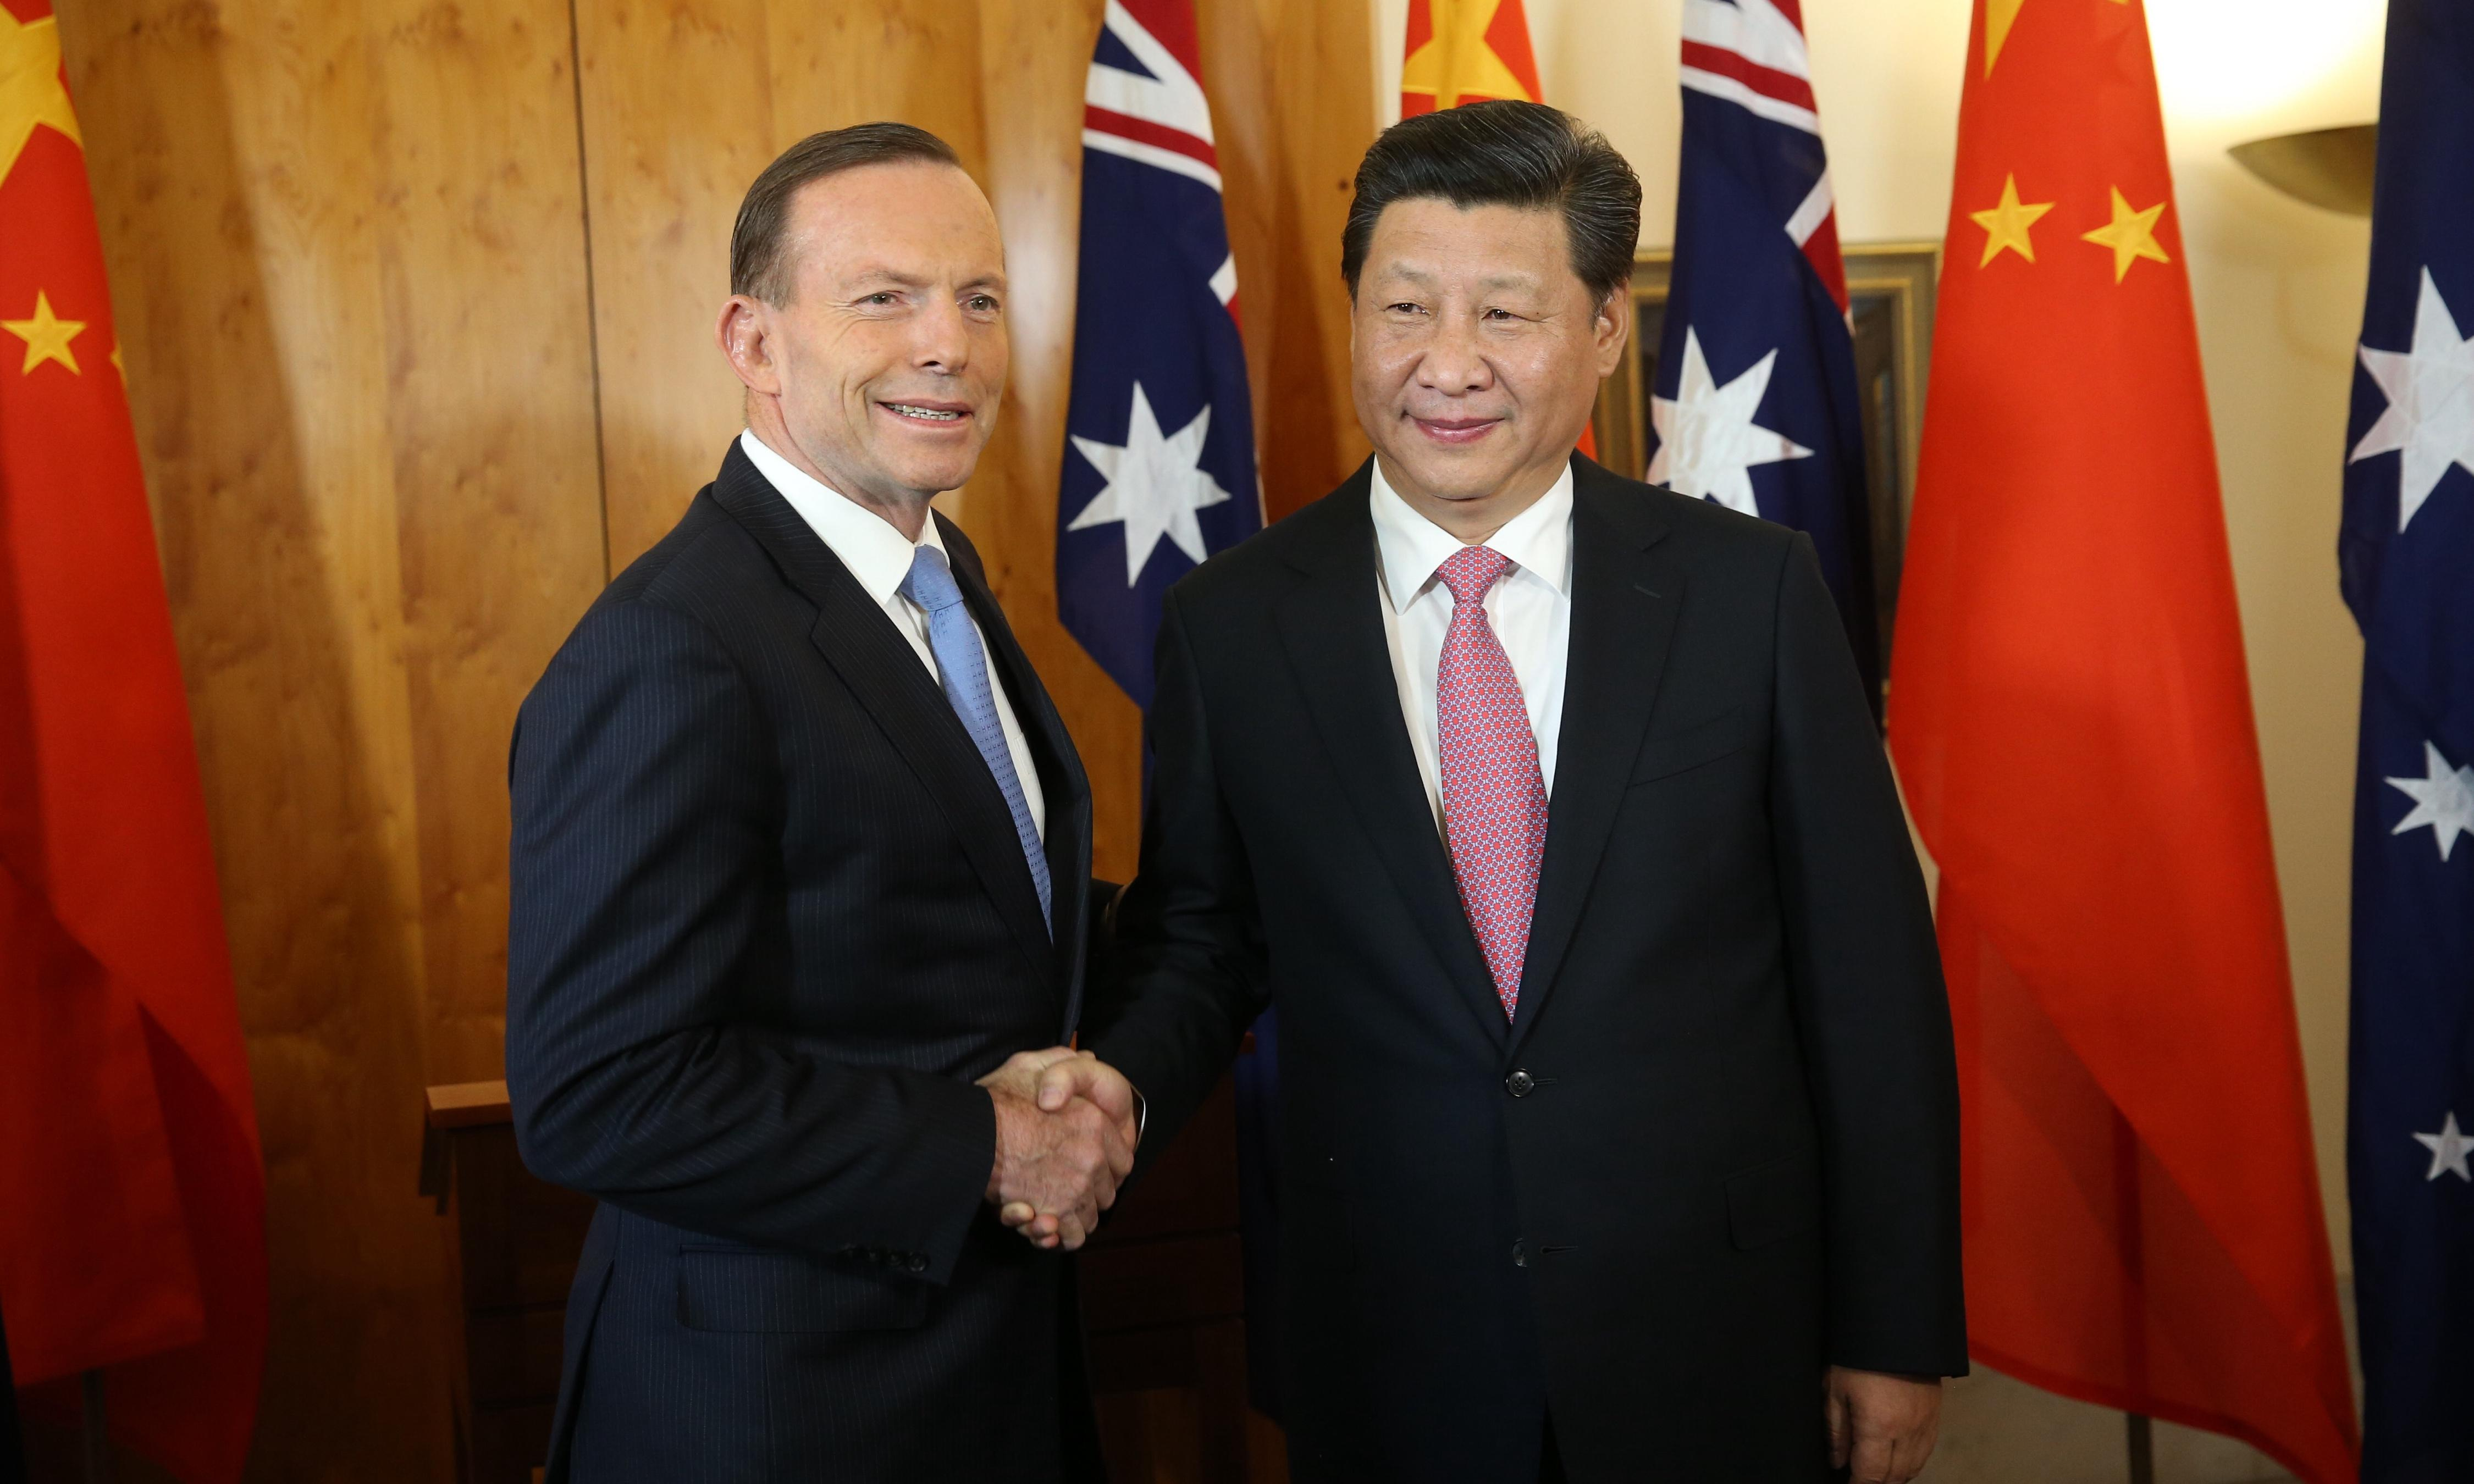 Tony Abbott accuses China of bullying neighbours and warns of 'cold peace'